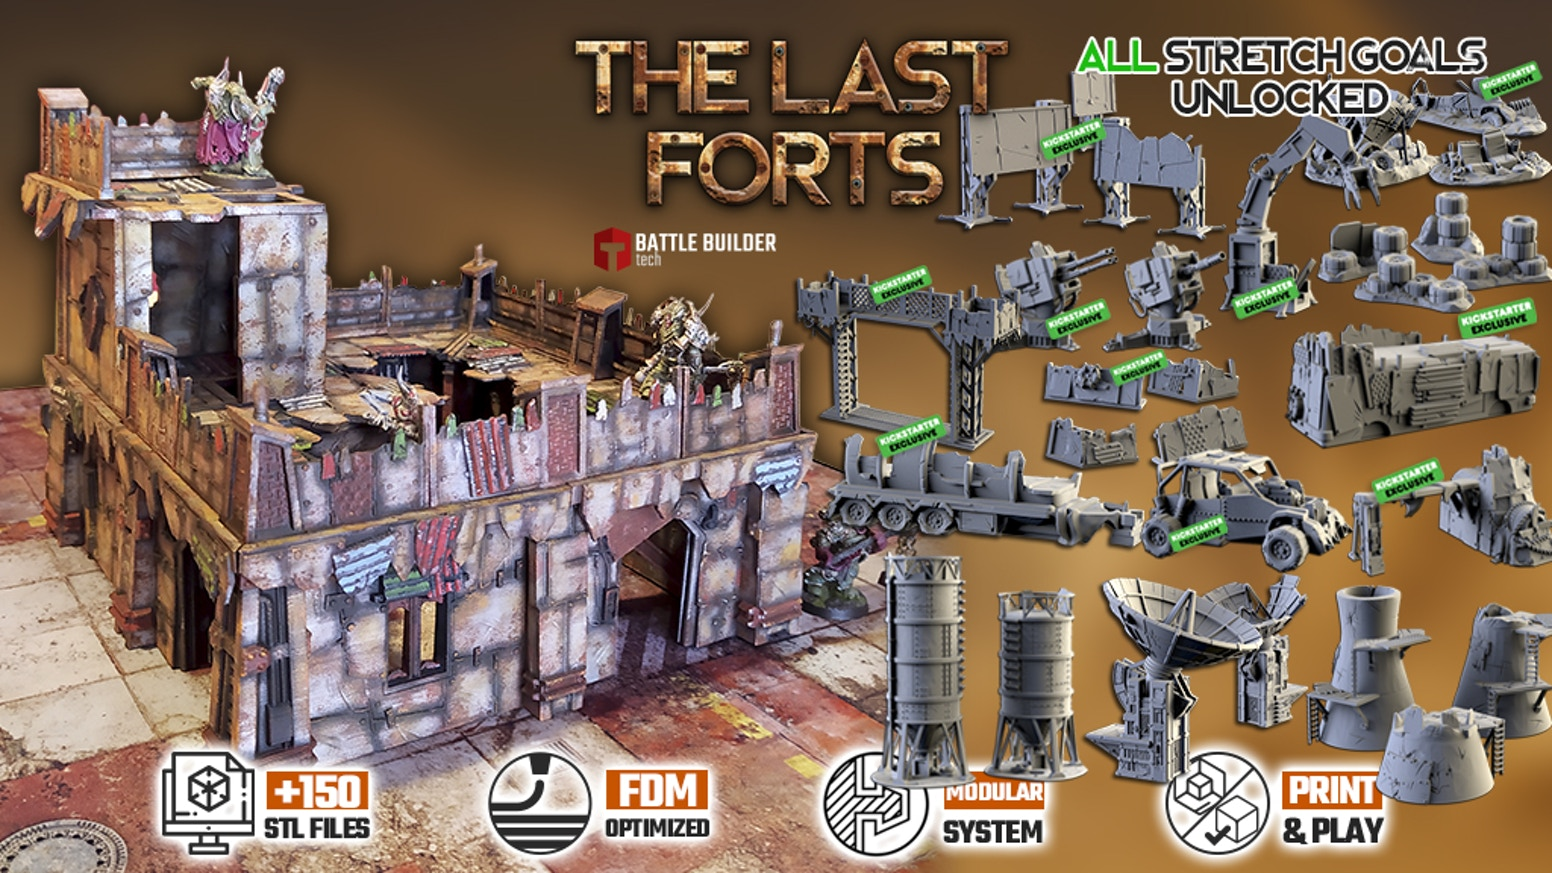 Modular wargaming terrain designed for 3D Printing that doesn't require extra clips (STL files).